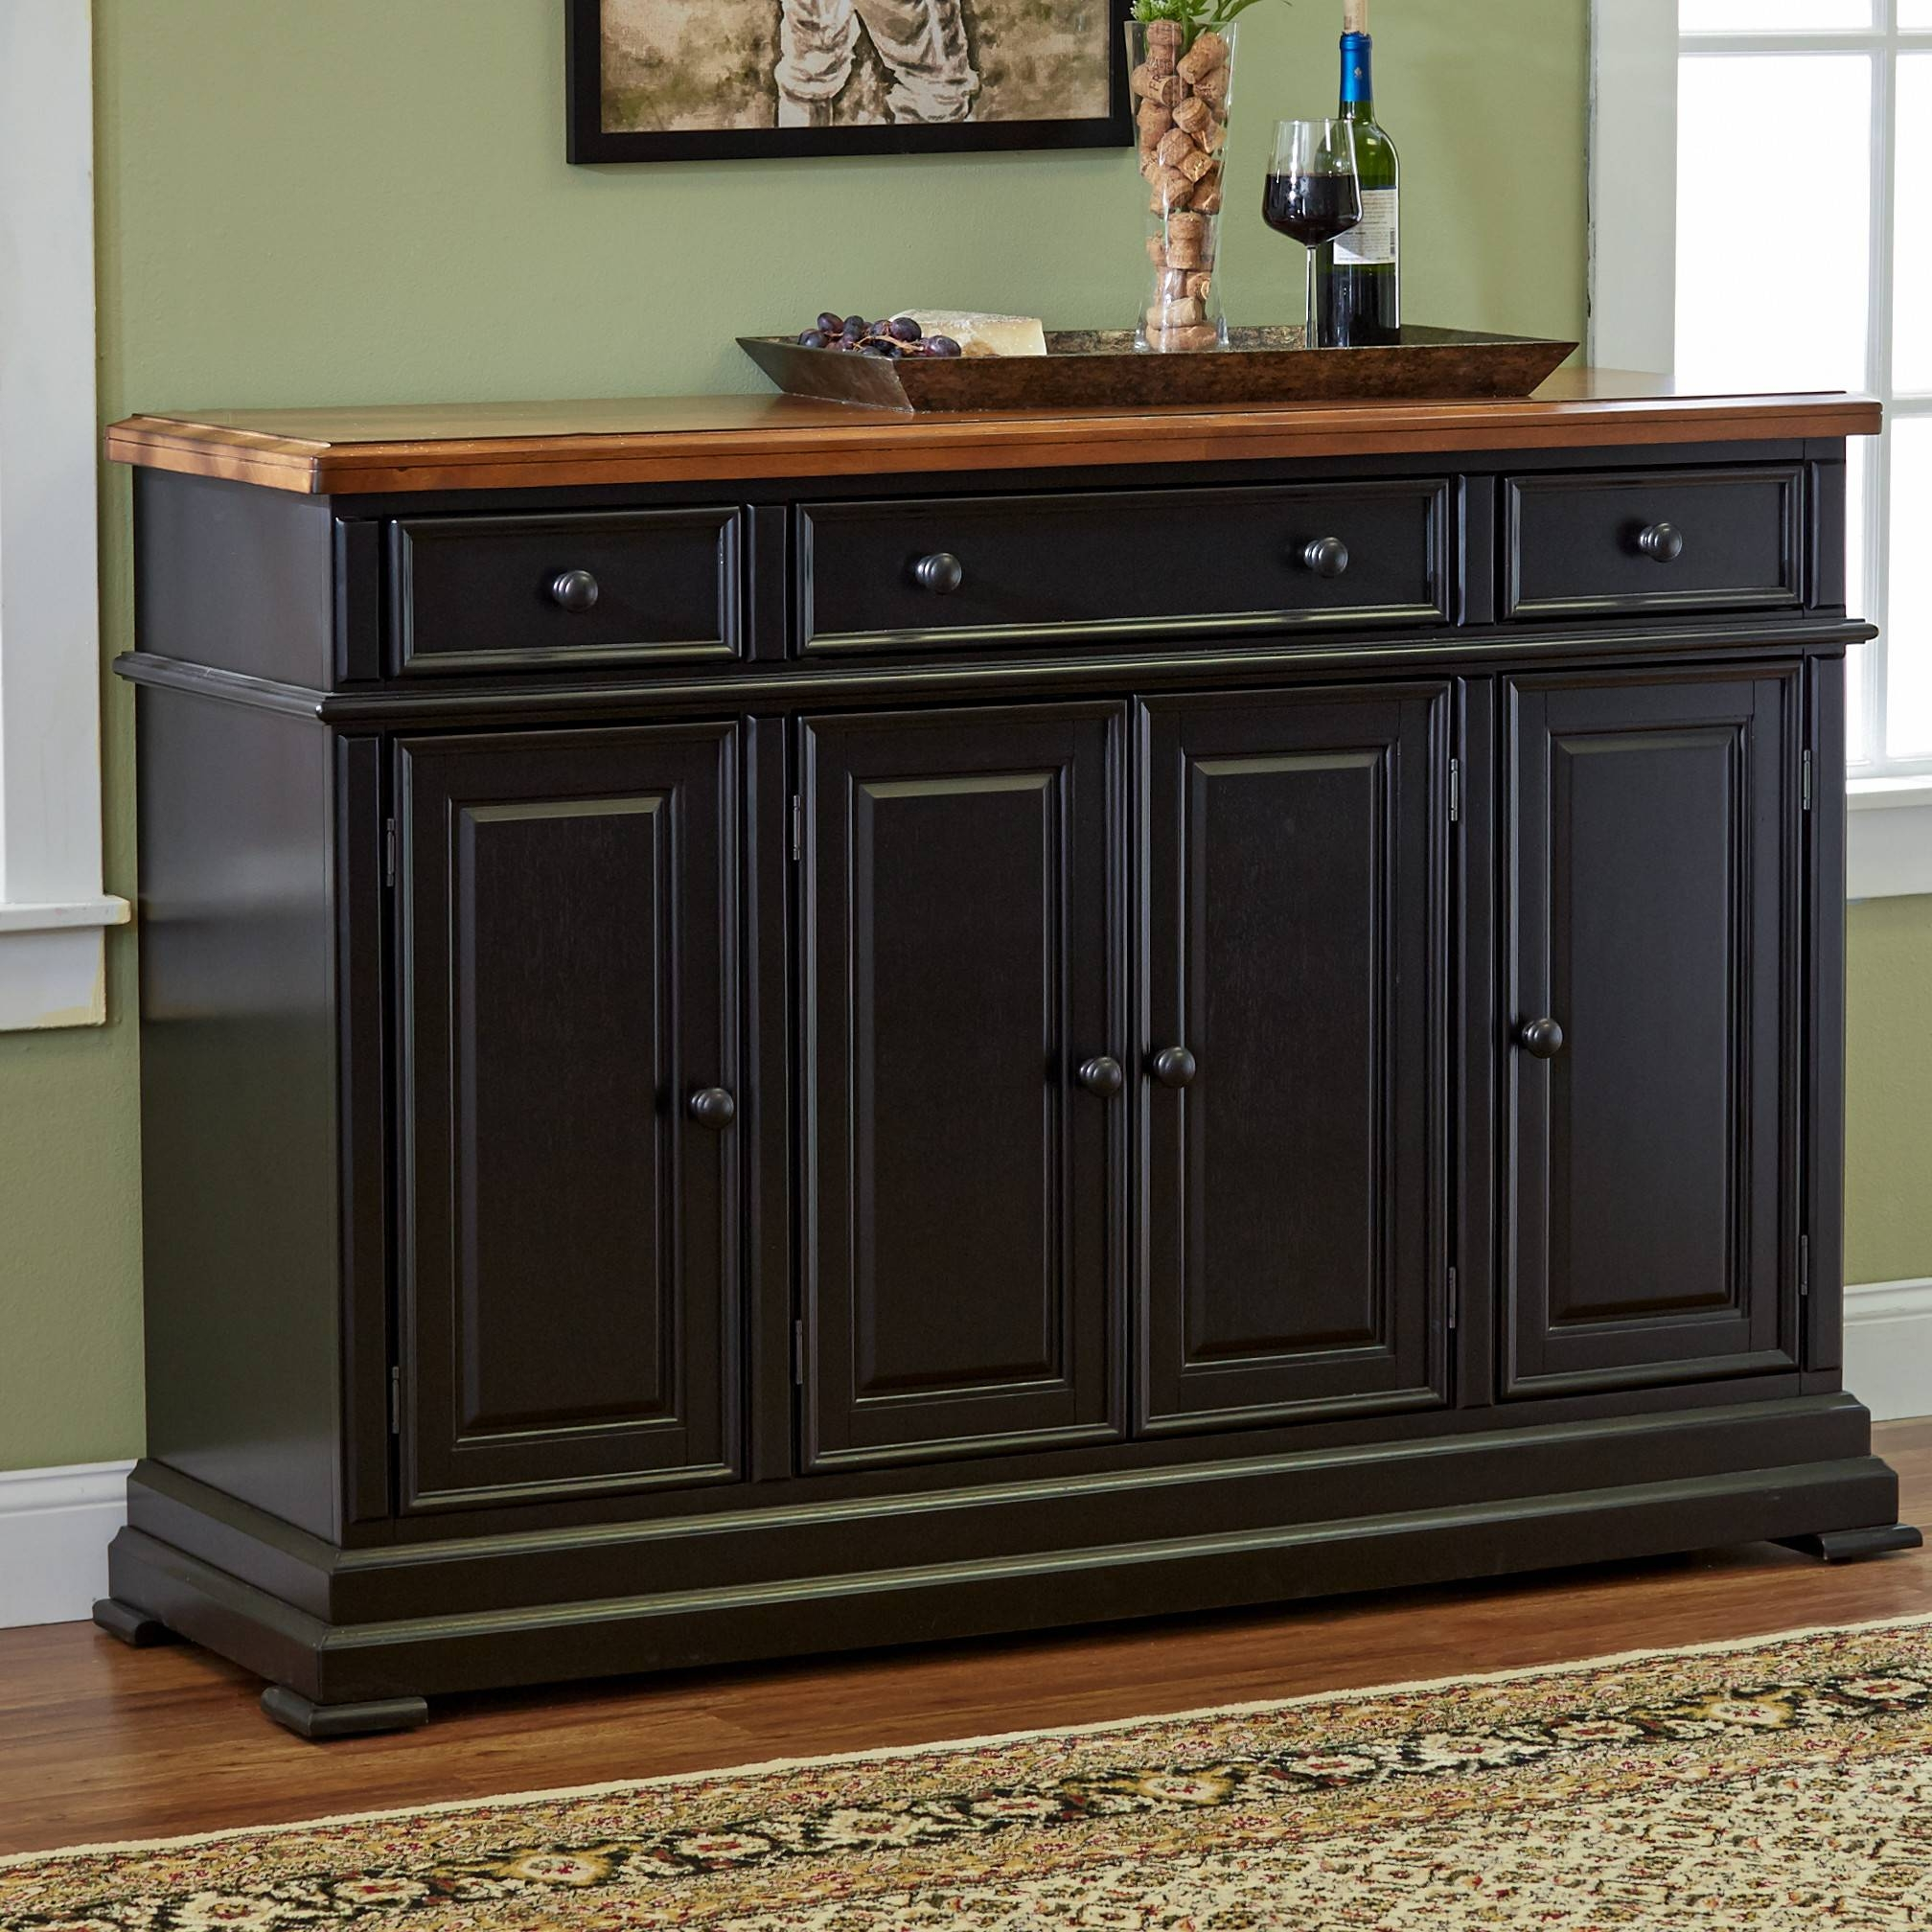 Dining Room Buffet Cabinet Sideboards Buffets Storage Servers 17 With Most Current Black Dining Room Sideboards (#8 of 15)